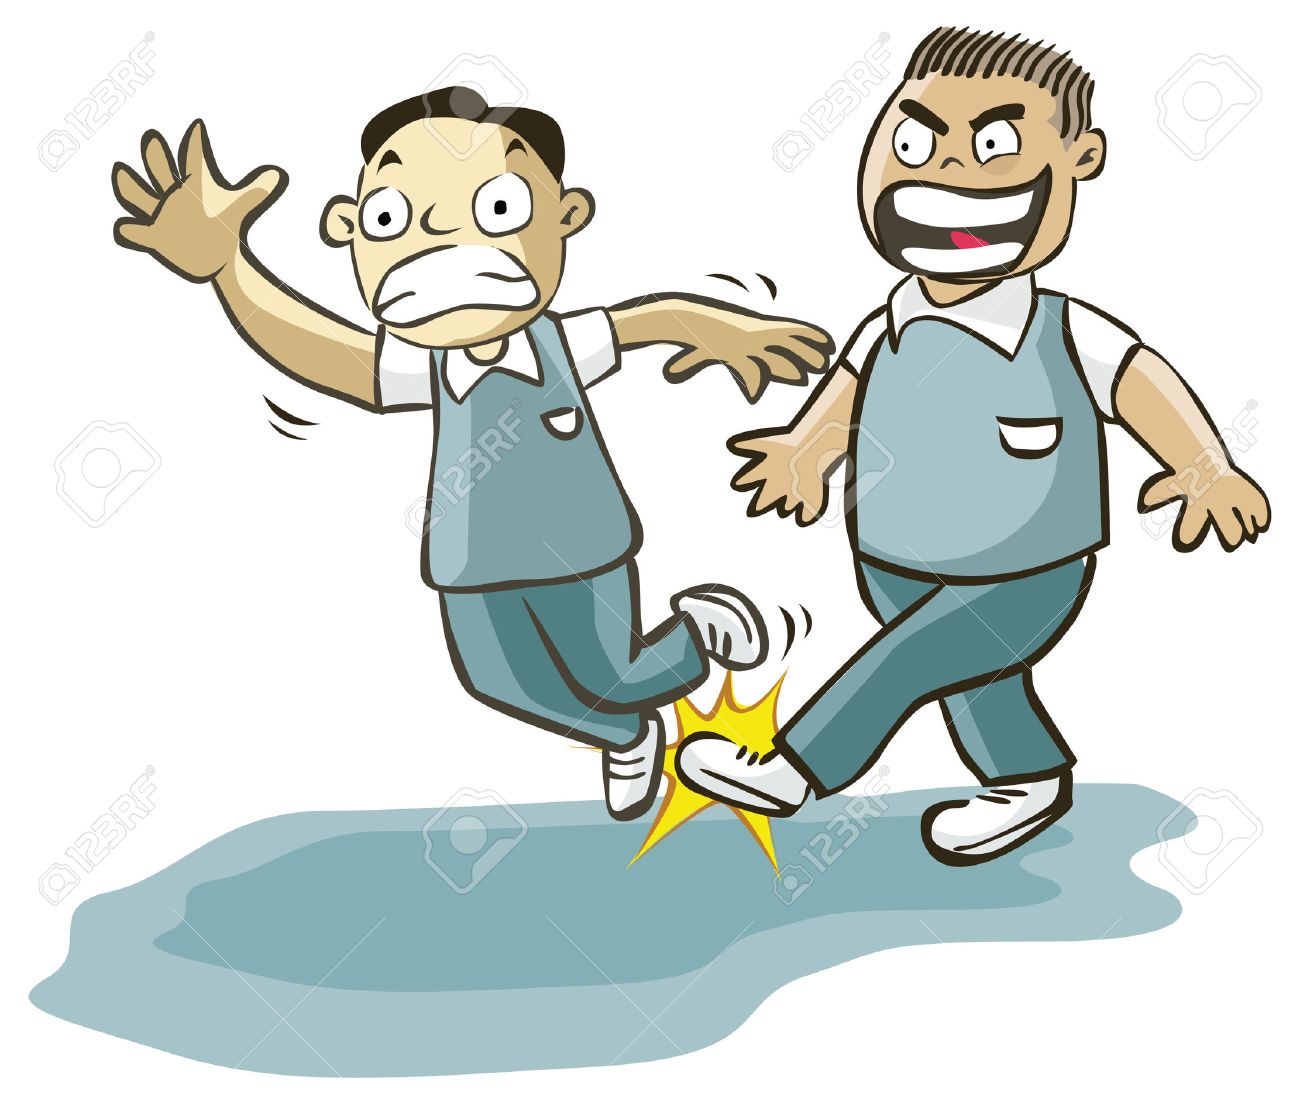 School bullying clipart 3 » Clipart Station.